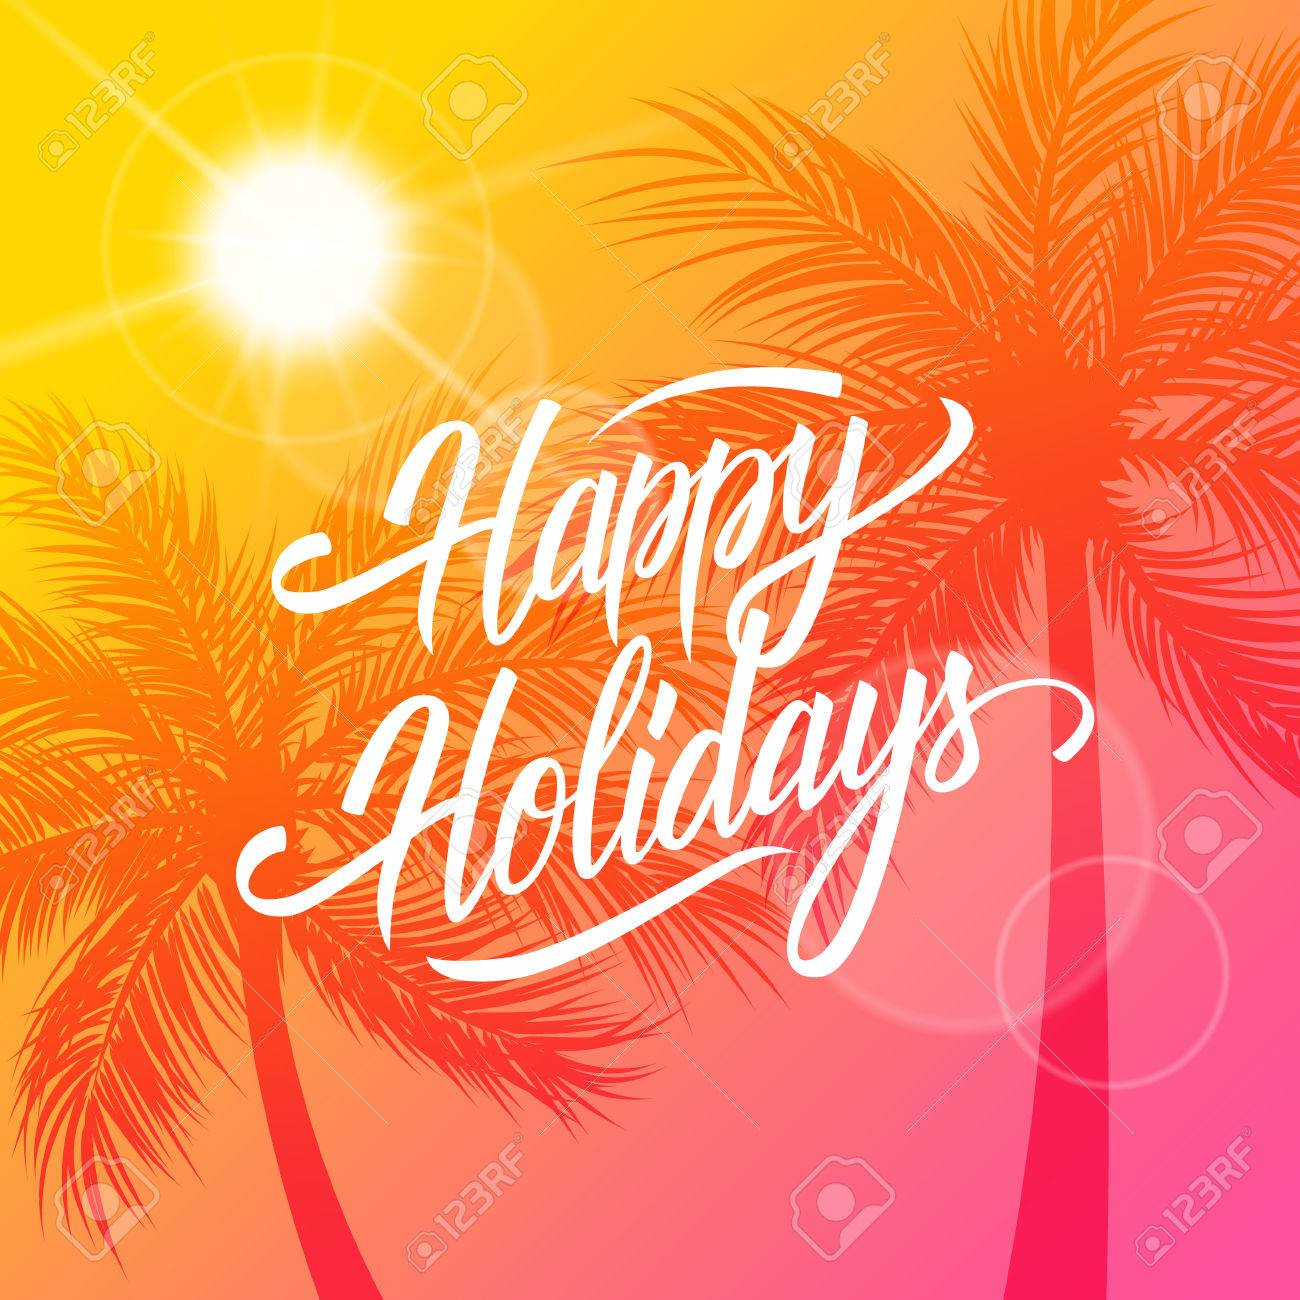 Happy holidays greeting card summertime background with happy holidays greeting card summertime background with calligraphic lettering text design and palm trees silhouette kristyandbryce Choice Image